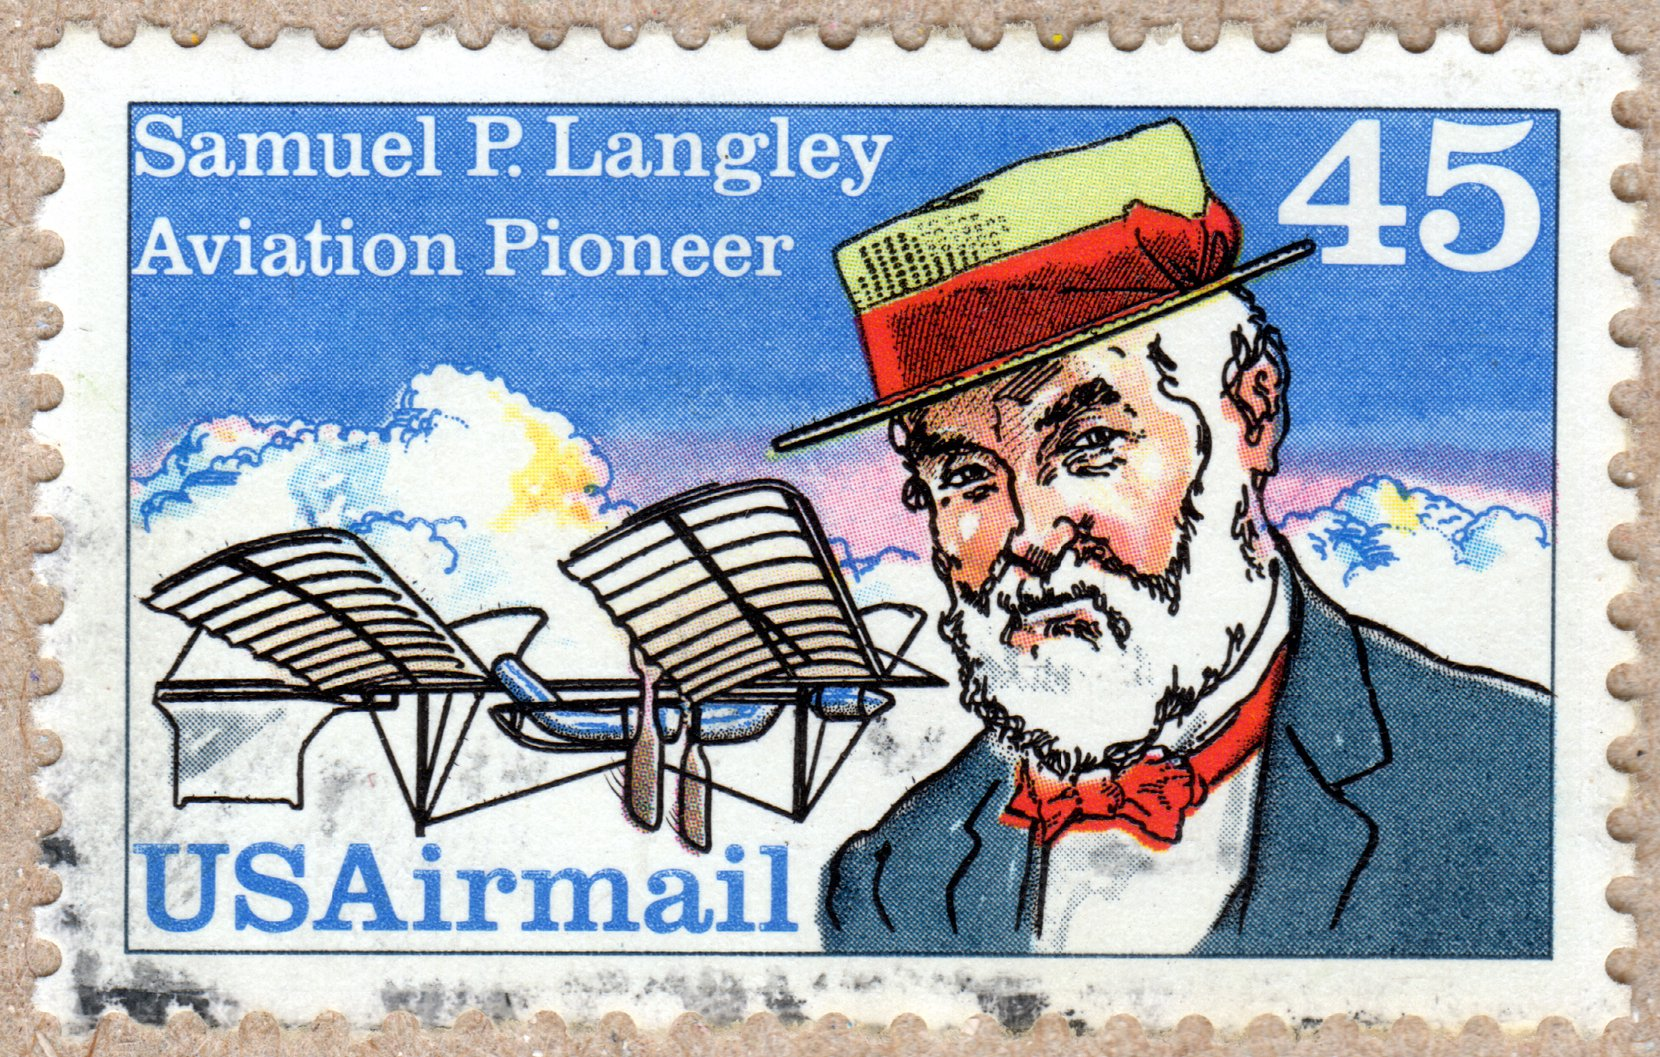 samuel p. langley, aviation pioneer usairmail 45¢ stamp philately postage stamps